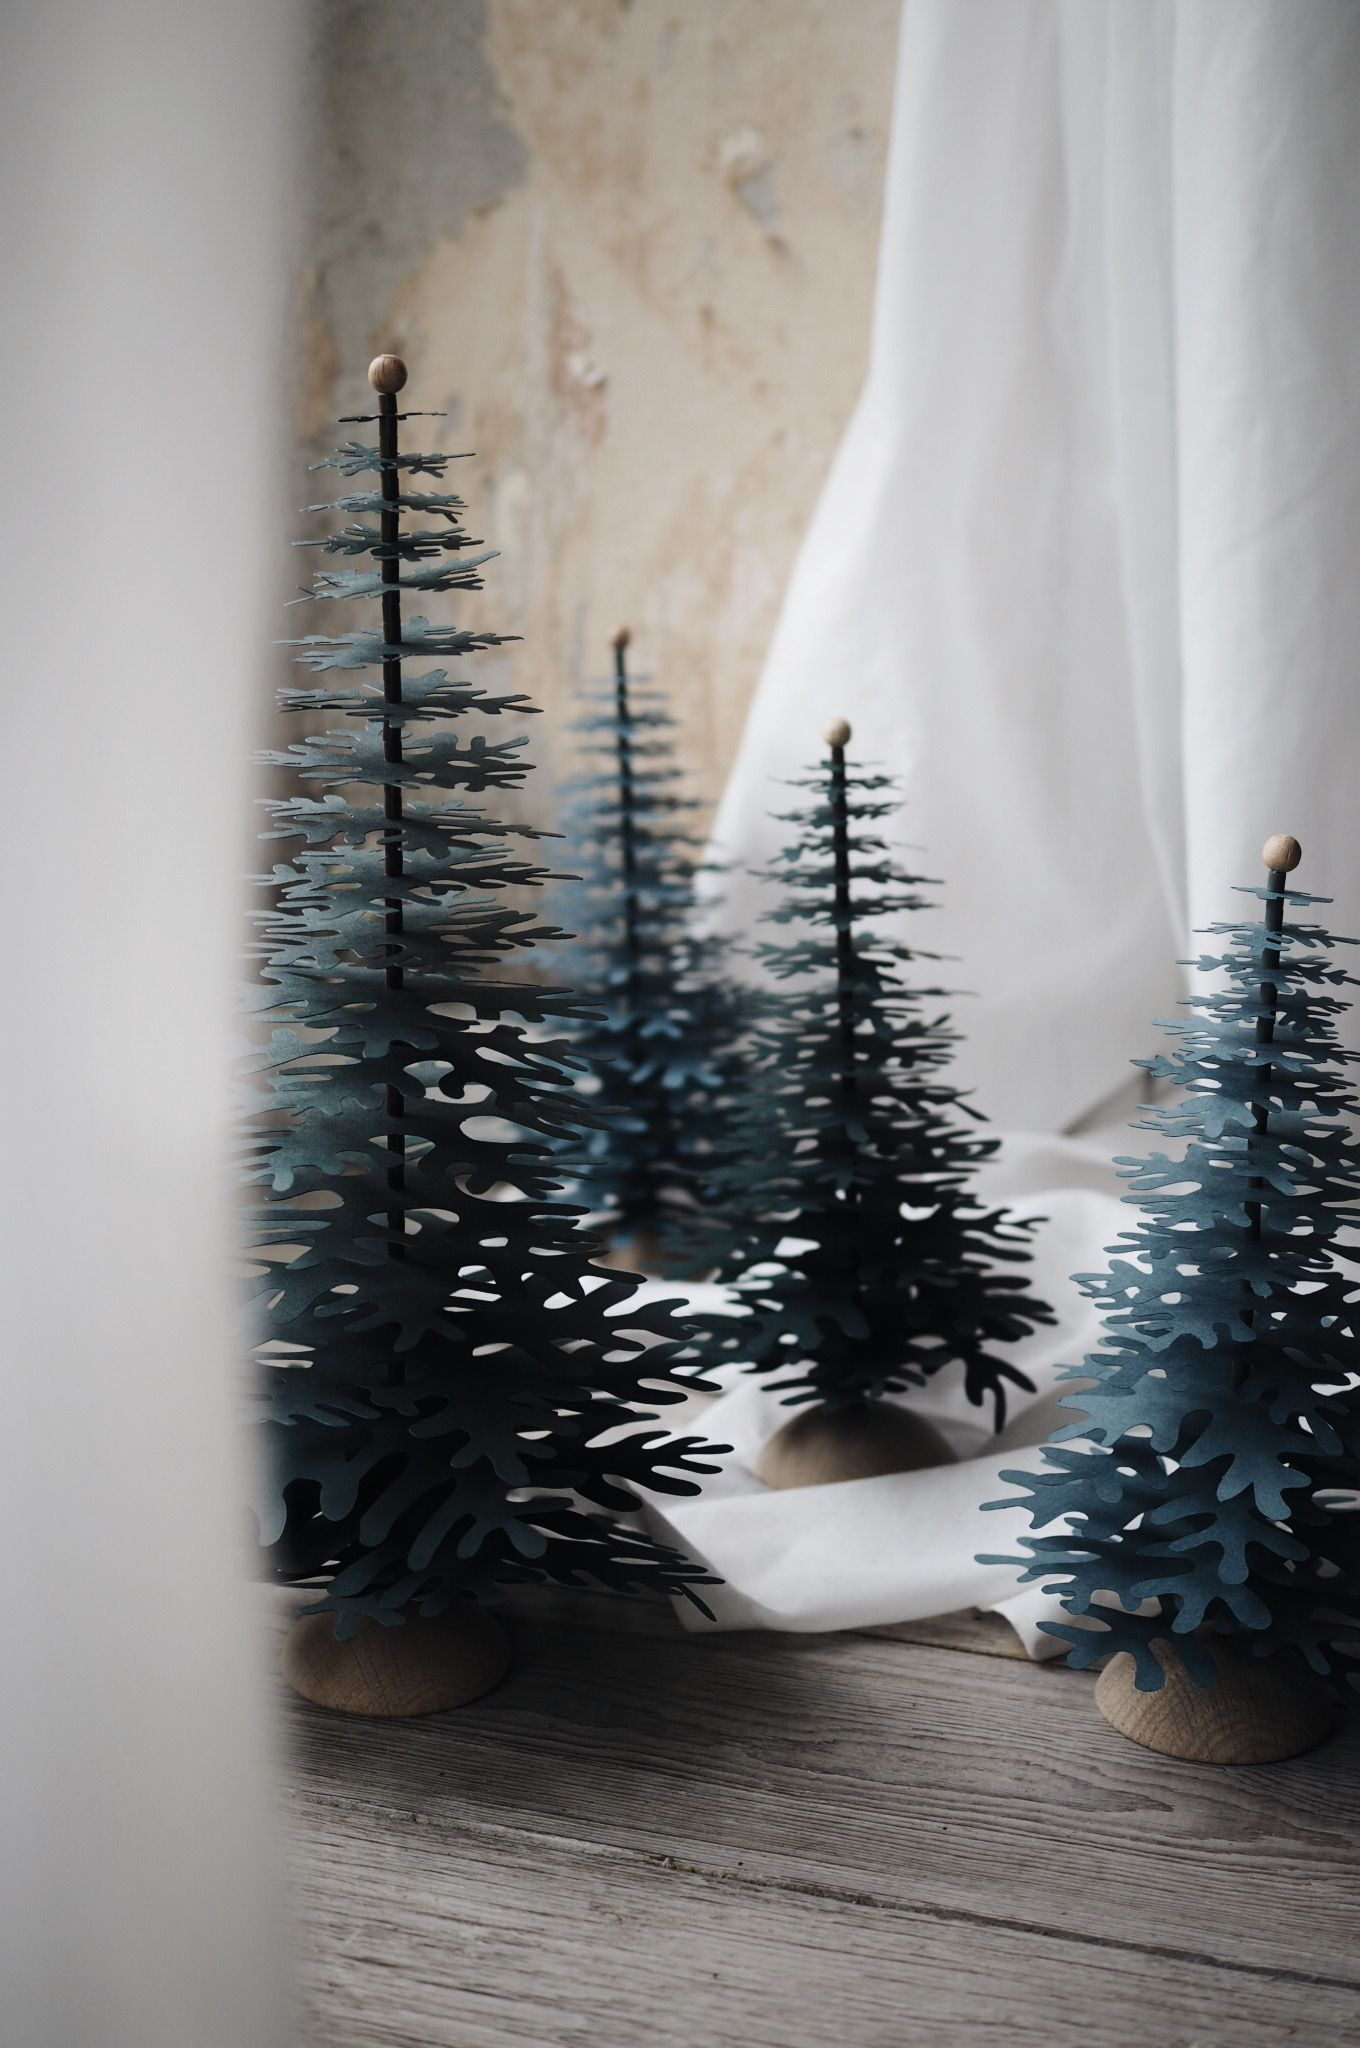 Nordic Fir Tree 3D Kit on Foot- Forest Green Big - Fabulous Goose Scandinavian interior design products to a discerning client